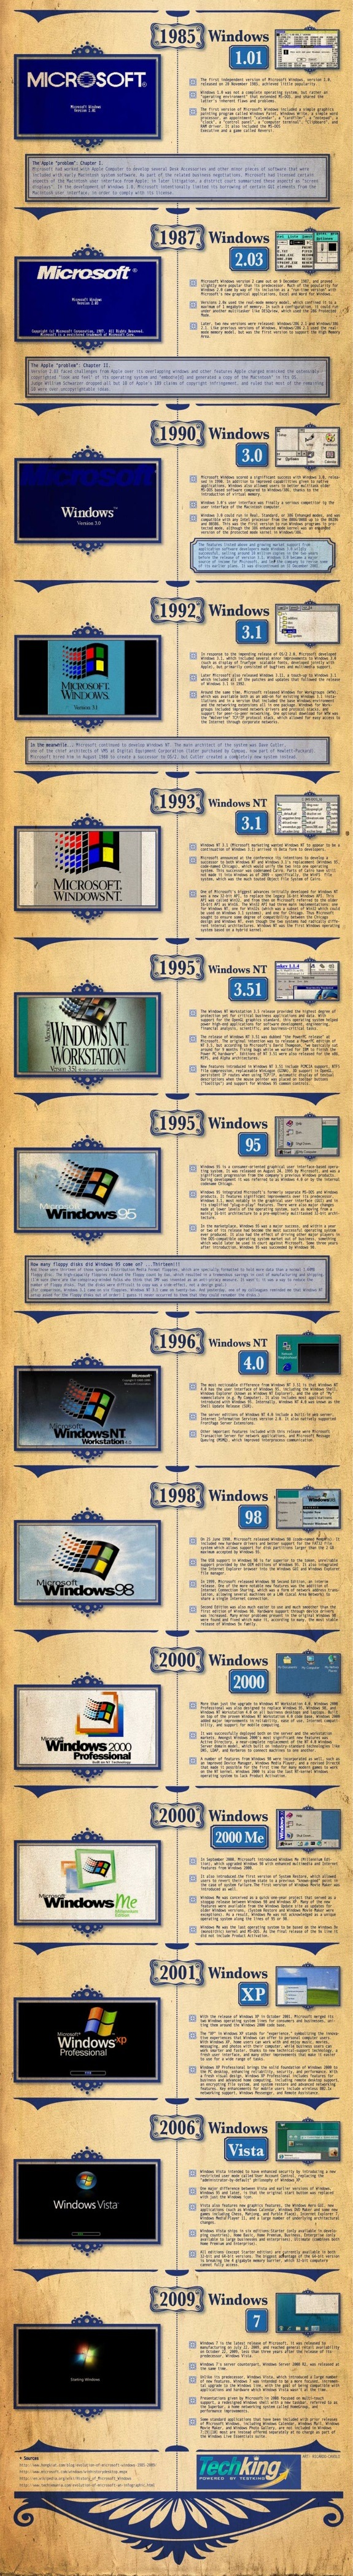 microsoft infographics  Infographic: The Darwinian Evolution of Microsoft Windows